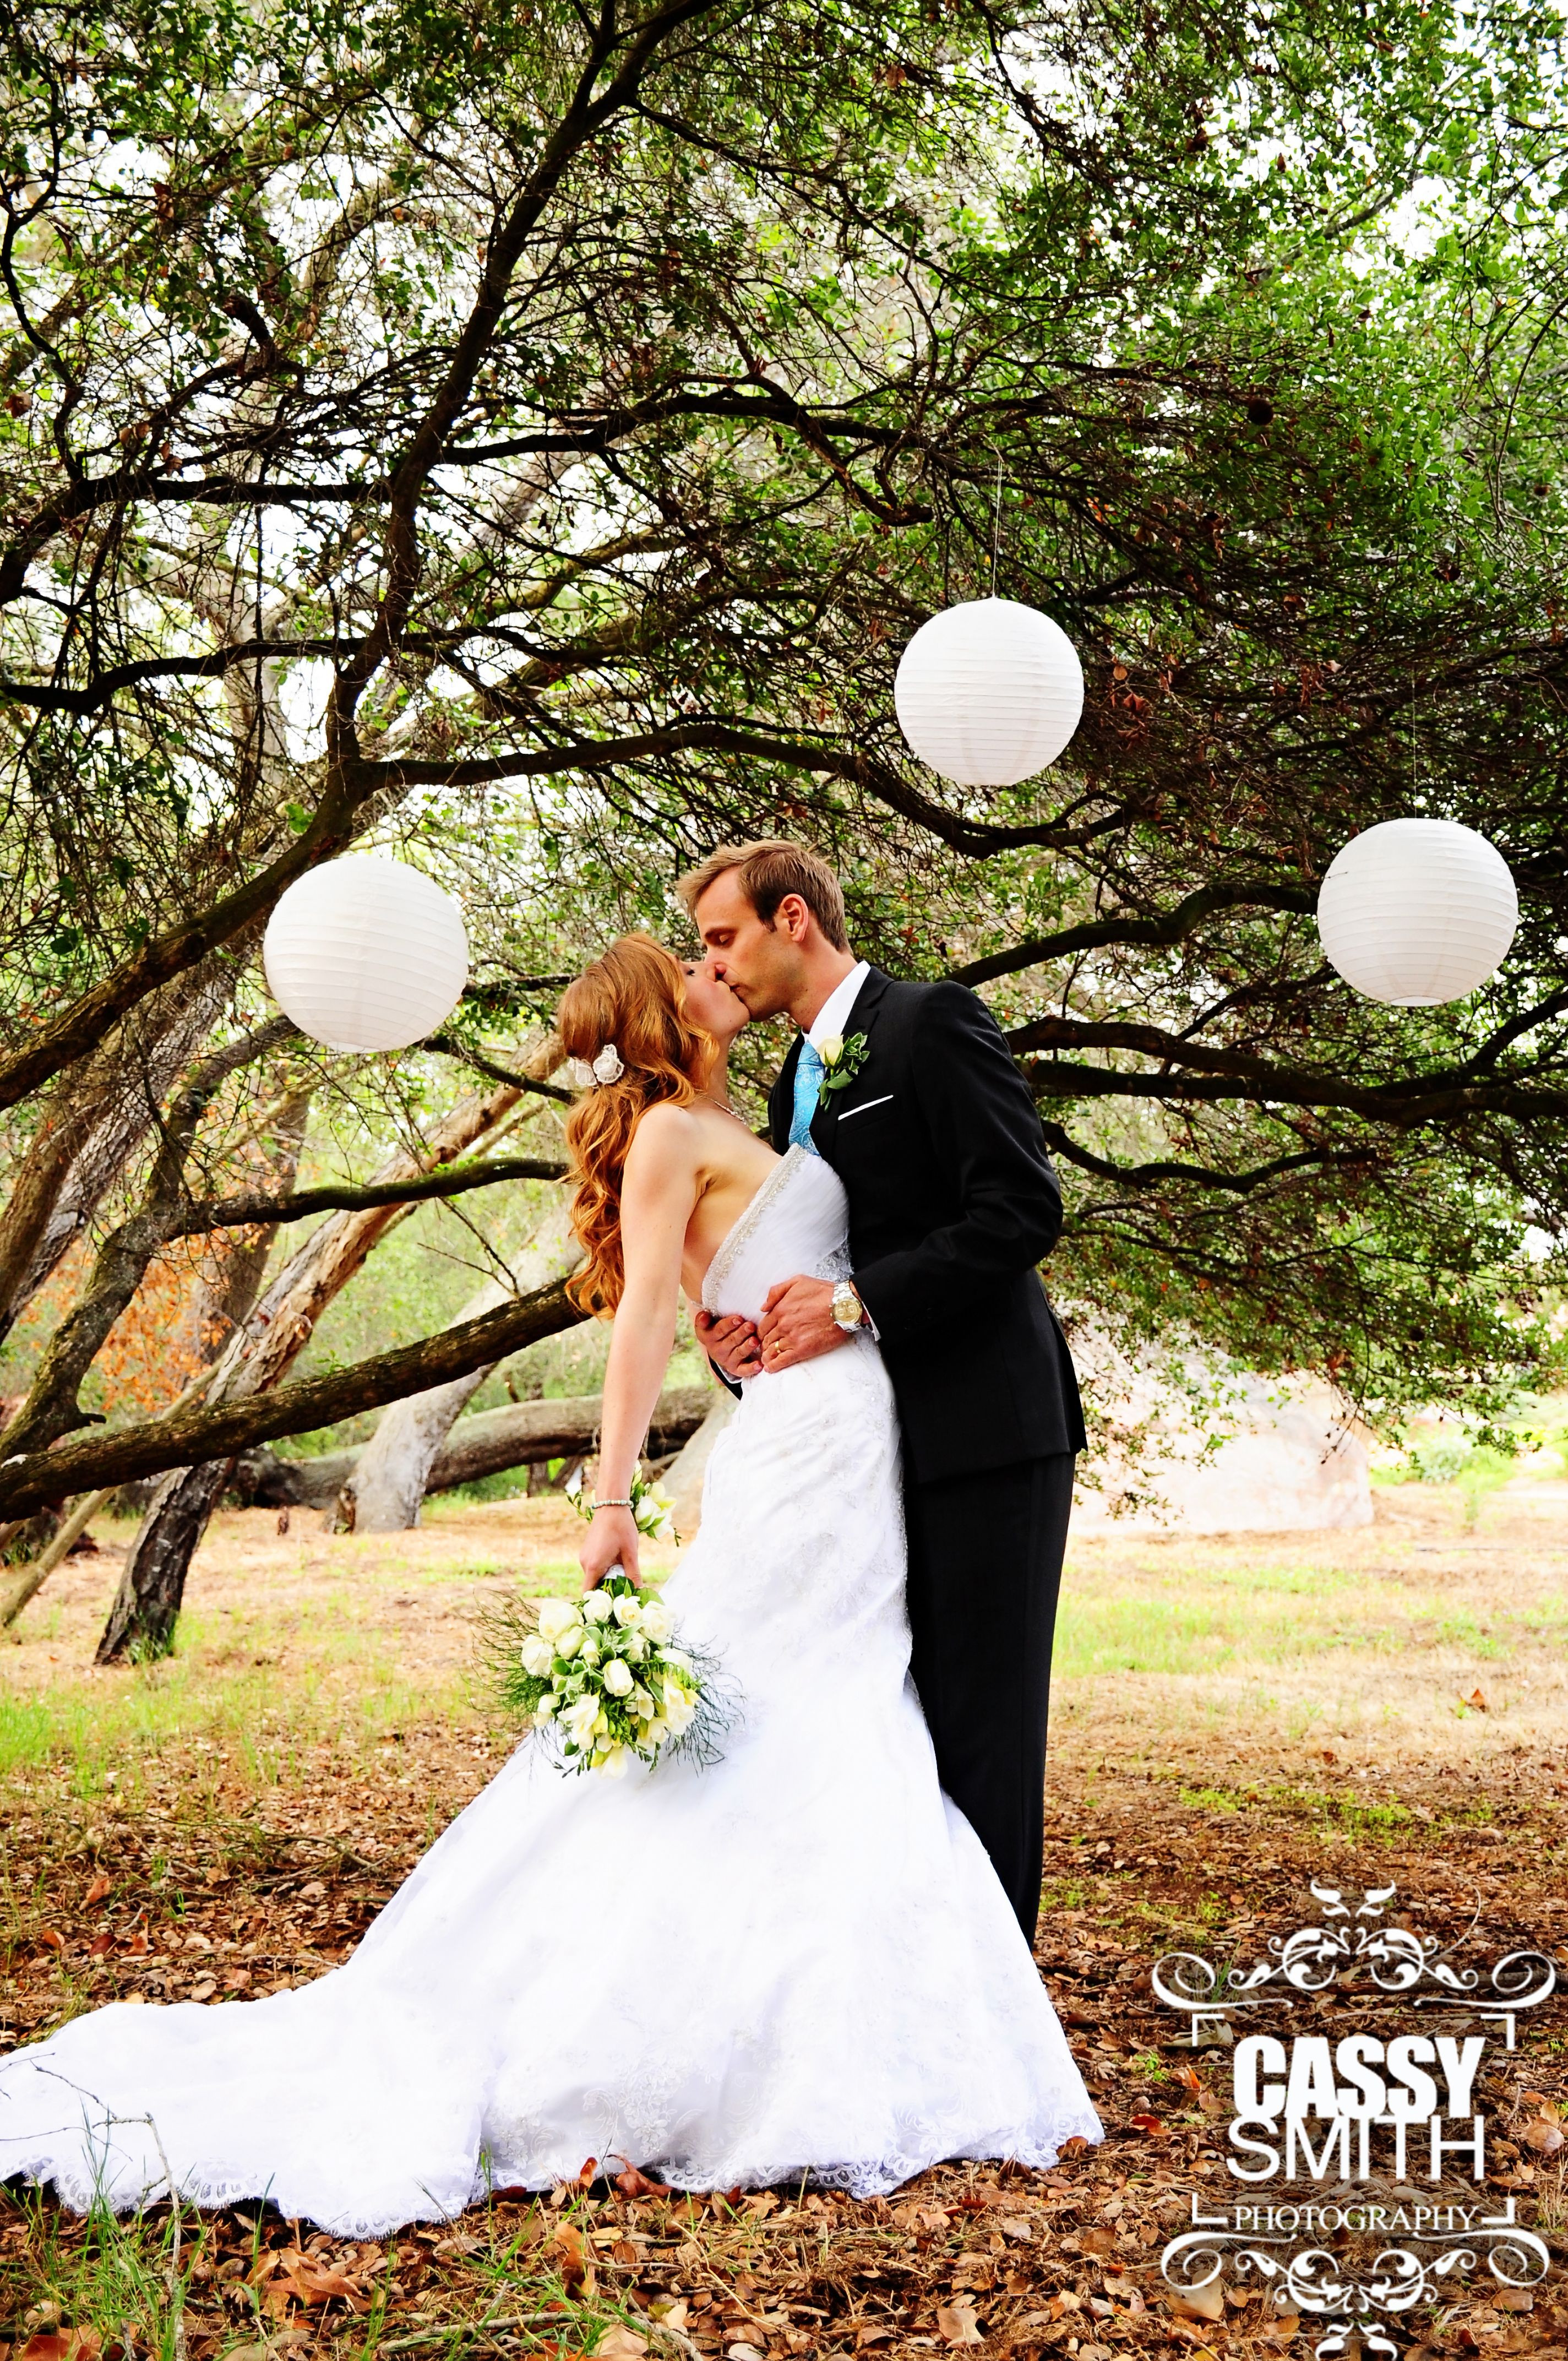 California Wedding Photographer Outdoor Photo Pose Lanterns Bride Groom